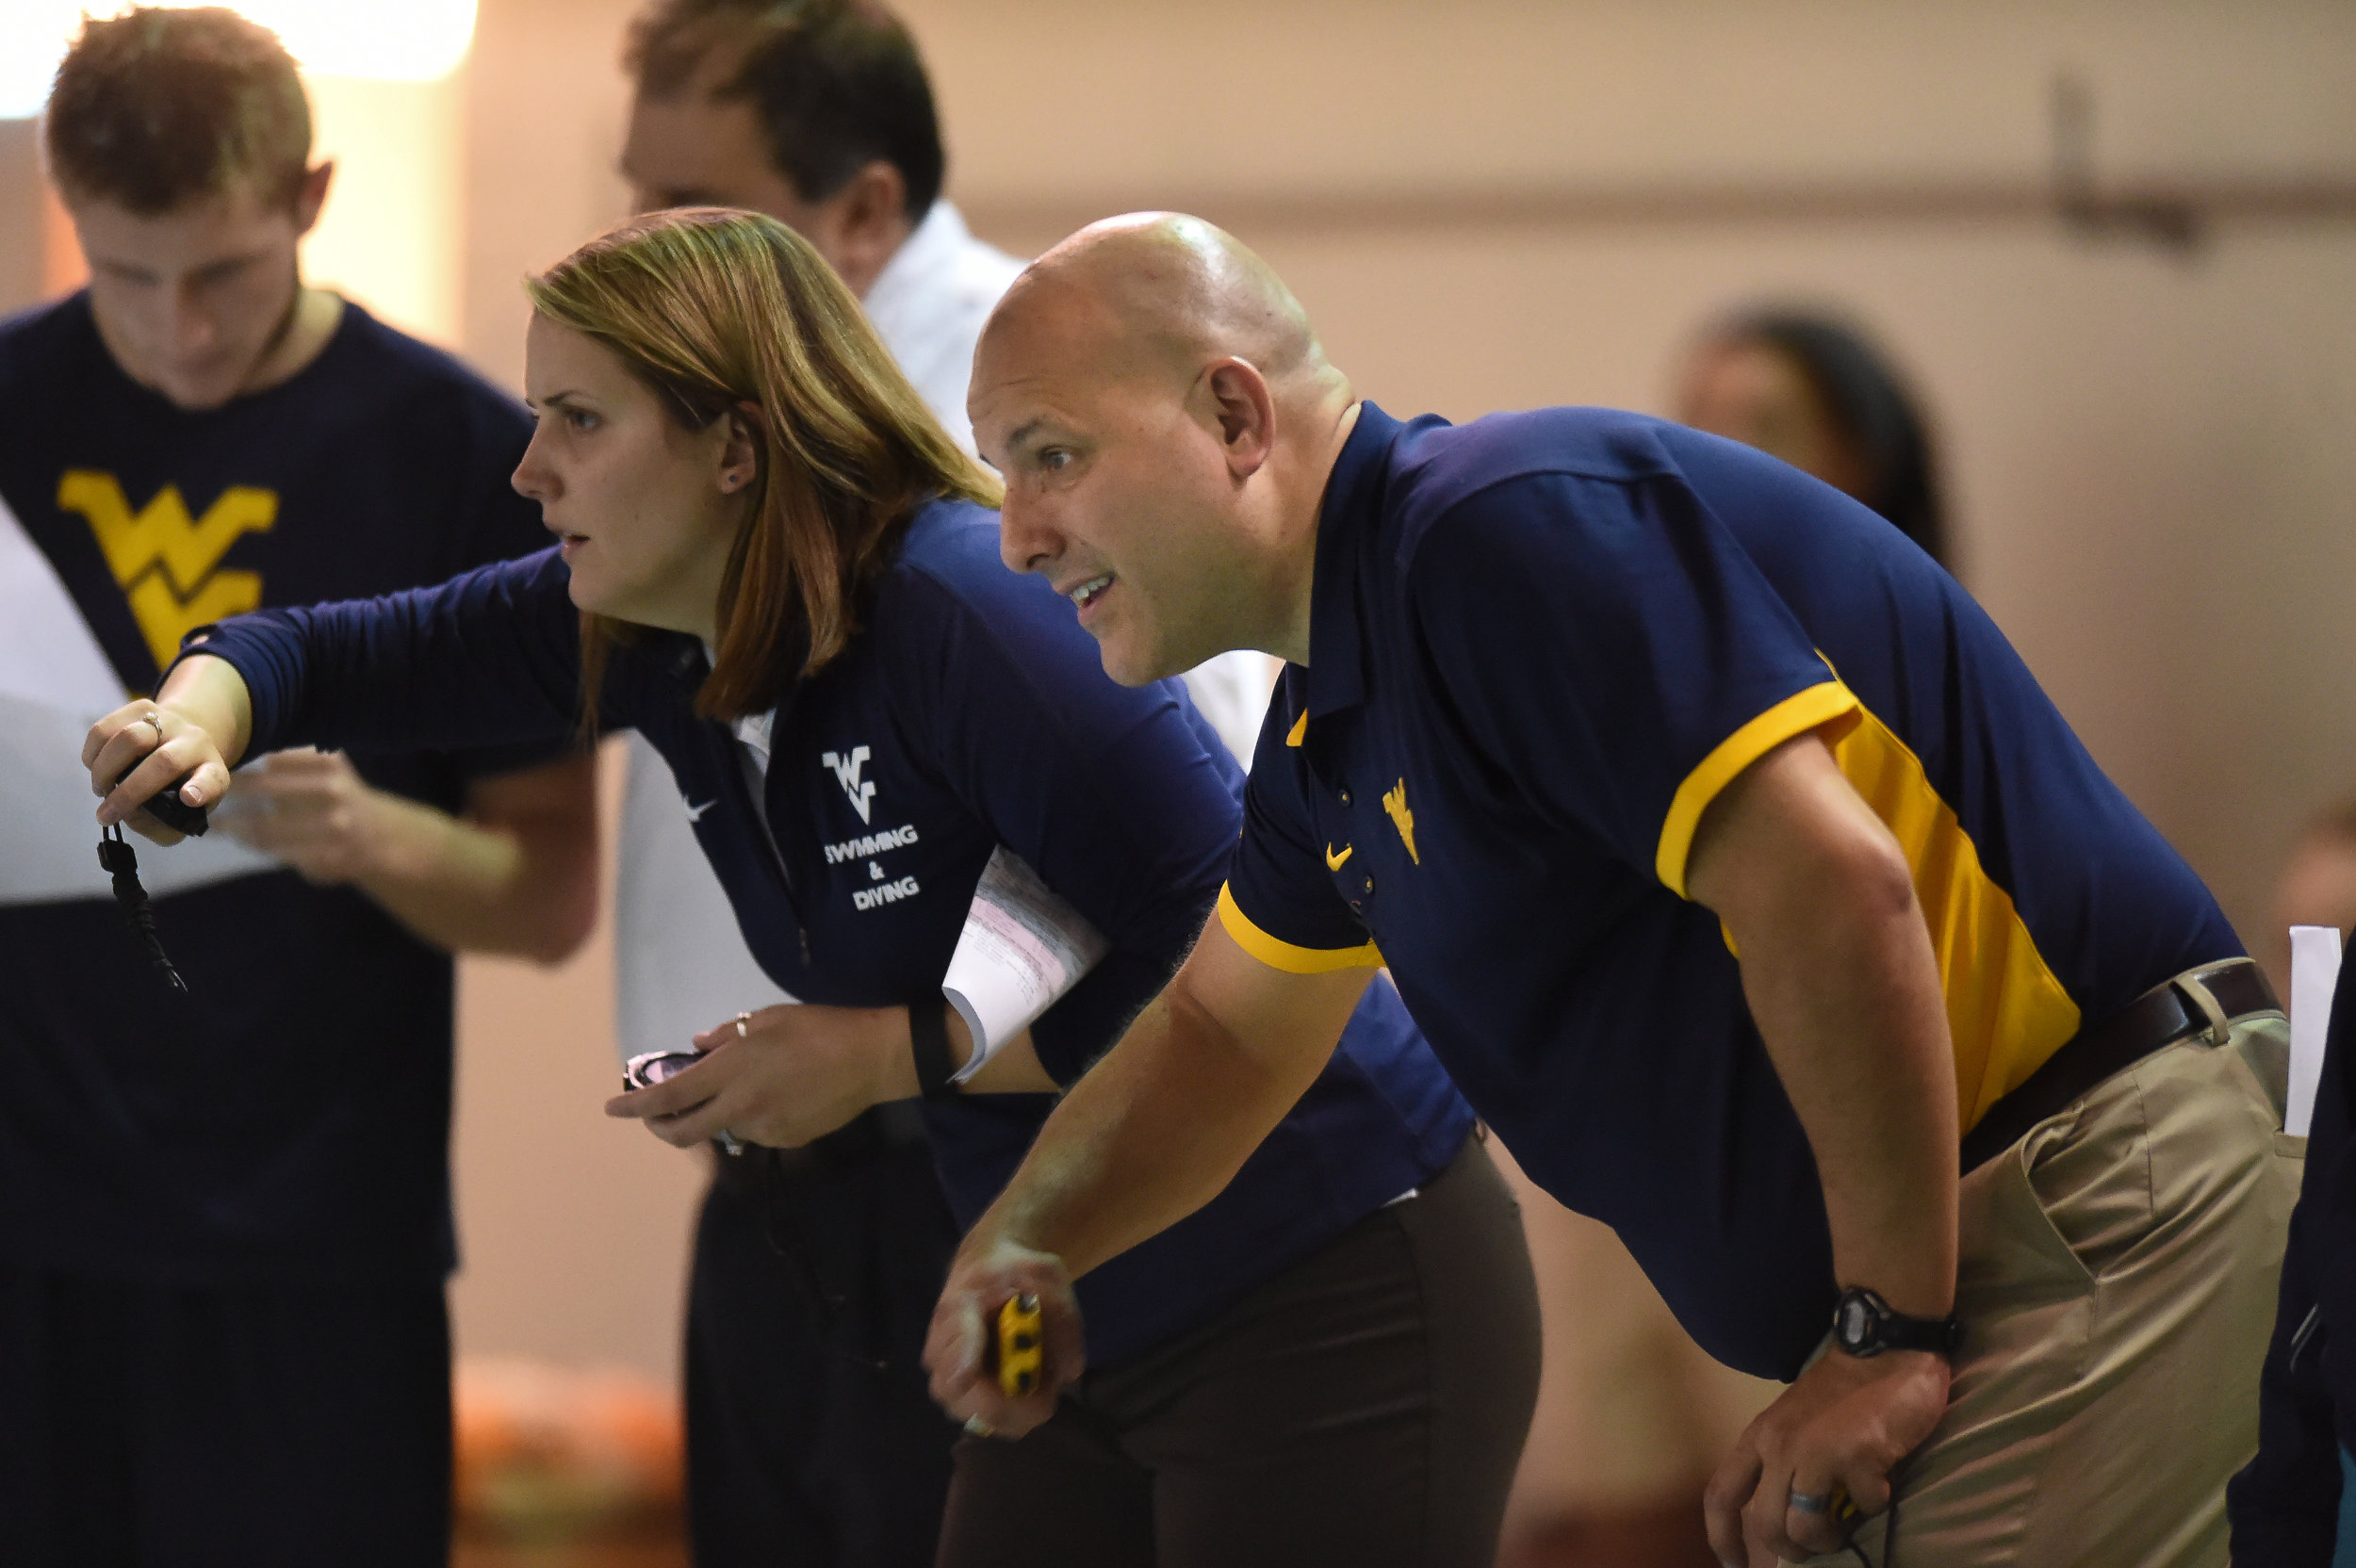 Elizabeth Iliff, Assistant Swim Coach, West Virginia University